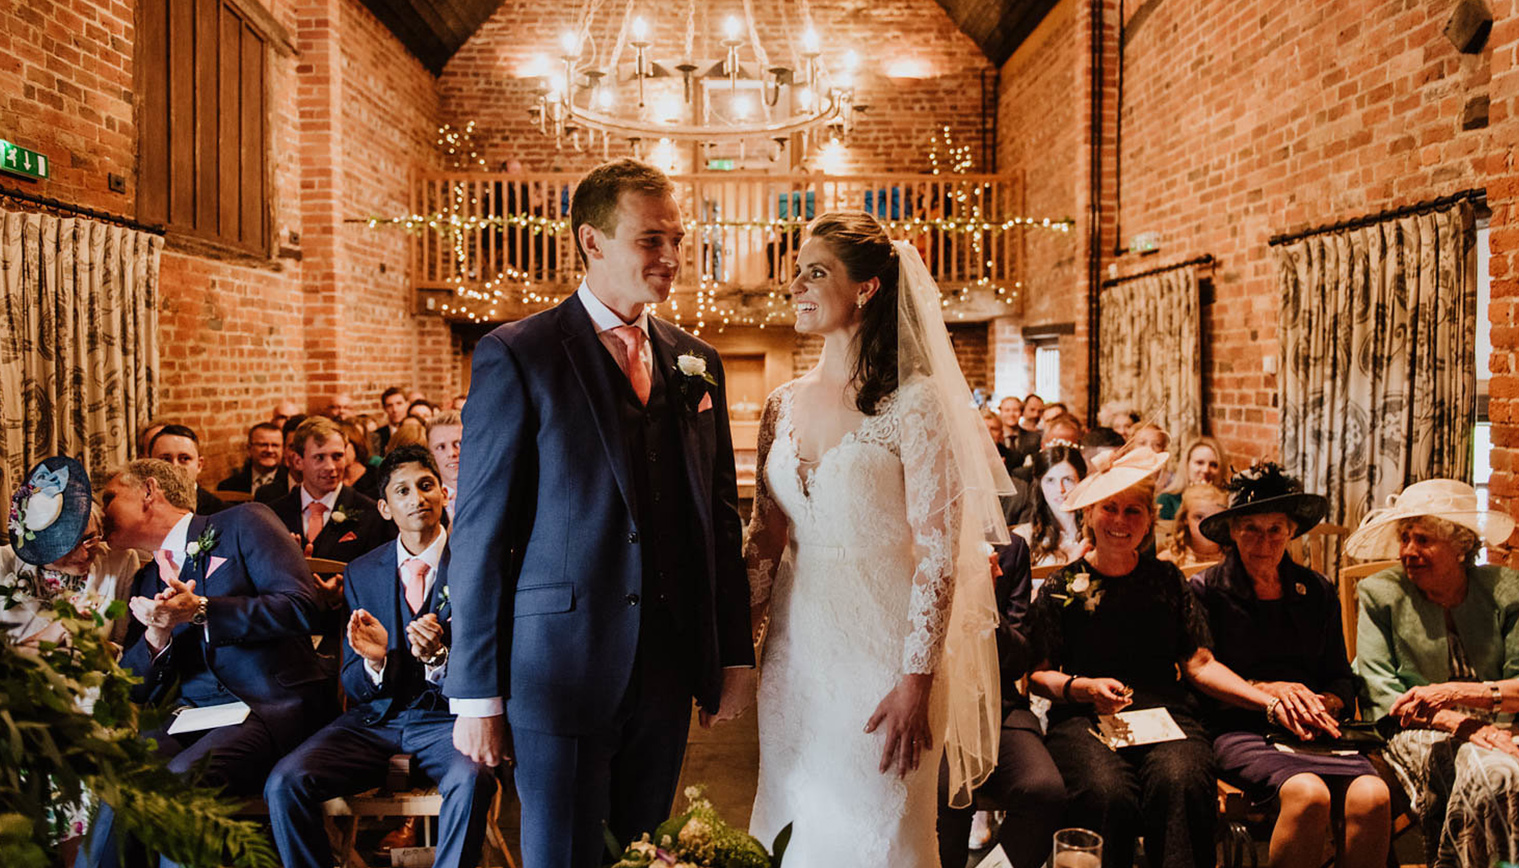 Curradine Barns in Worcestershire is the perfect venue for a last minute wedding